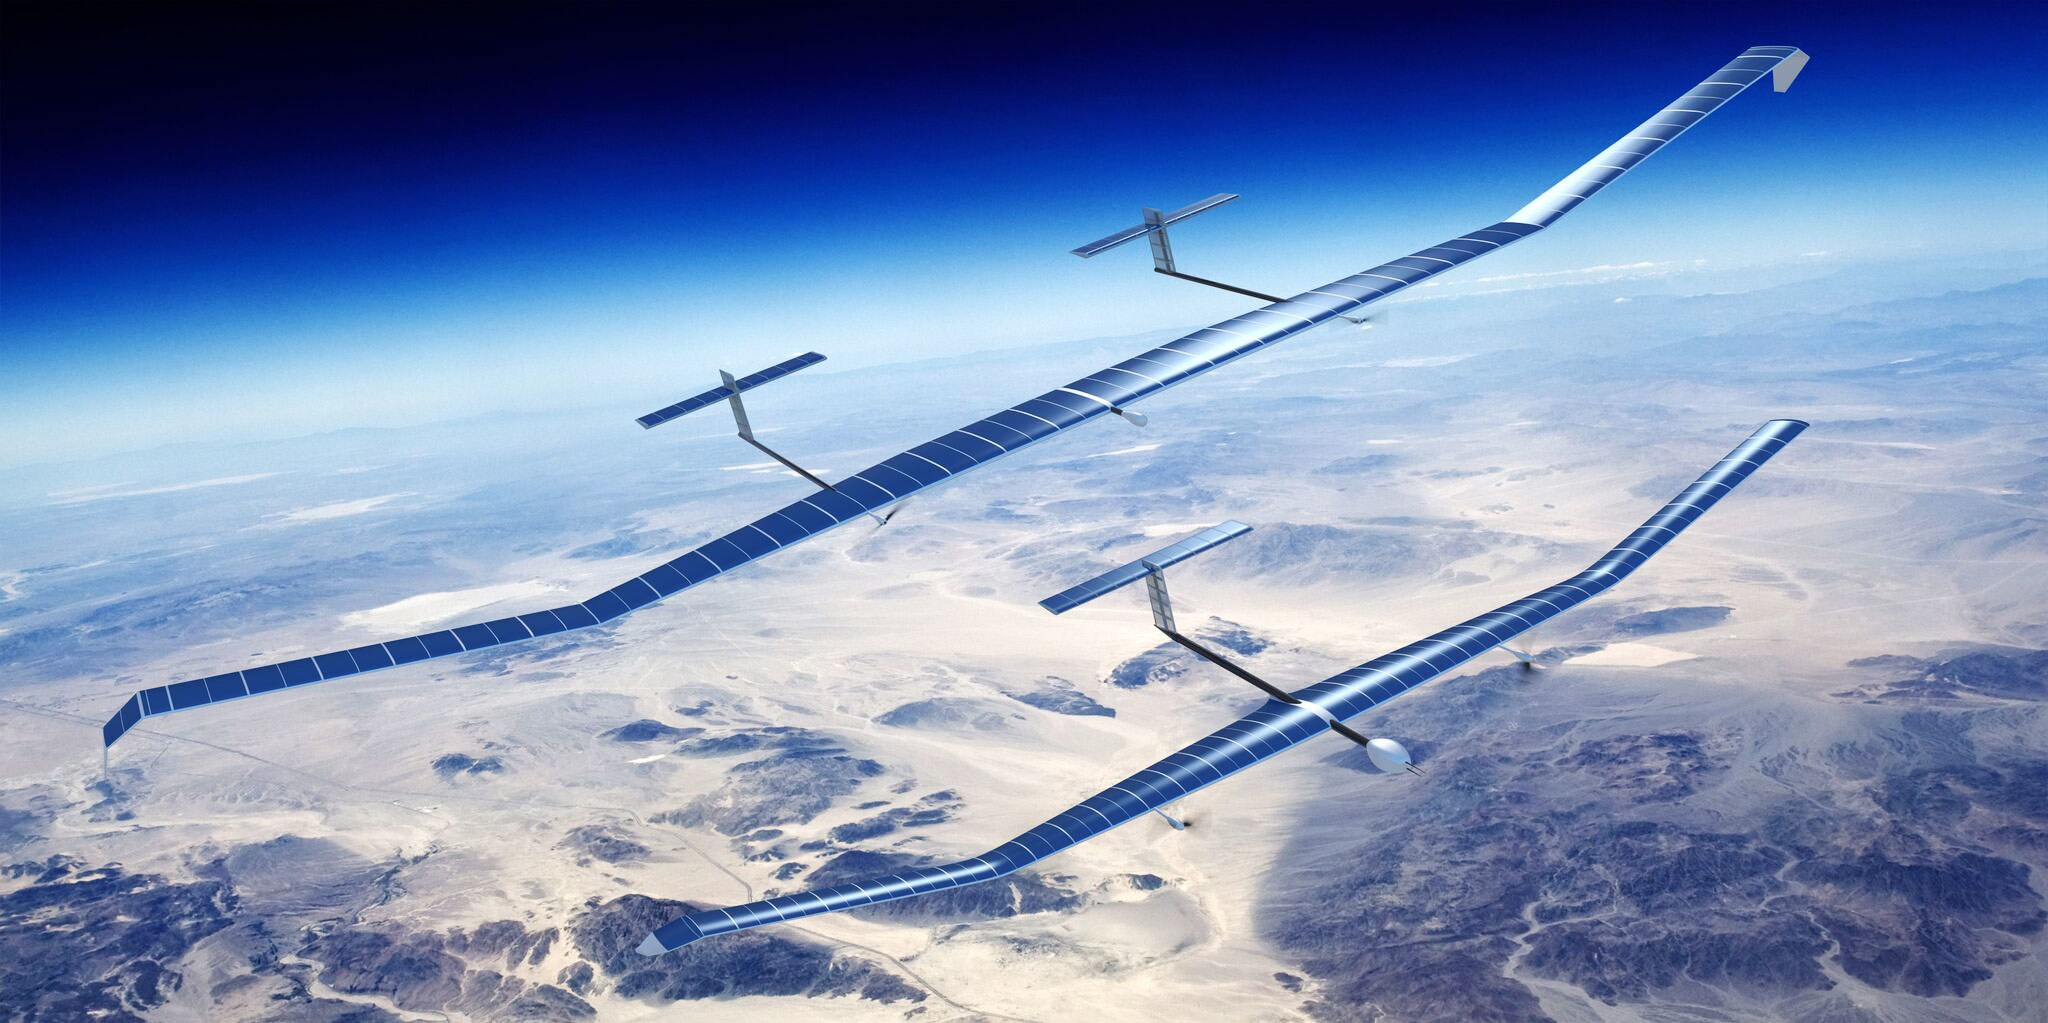 An Airbus Solar Airplane Flew for 26 Days in a Row